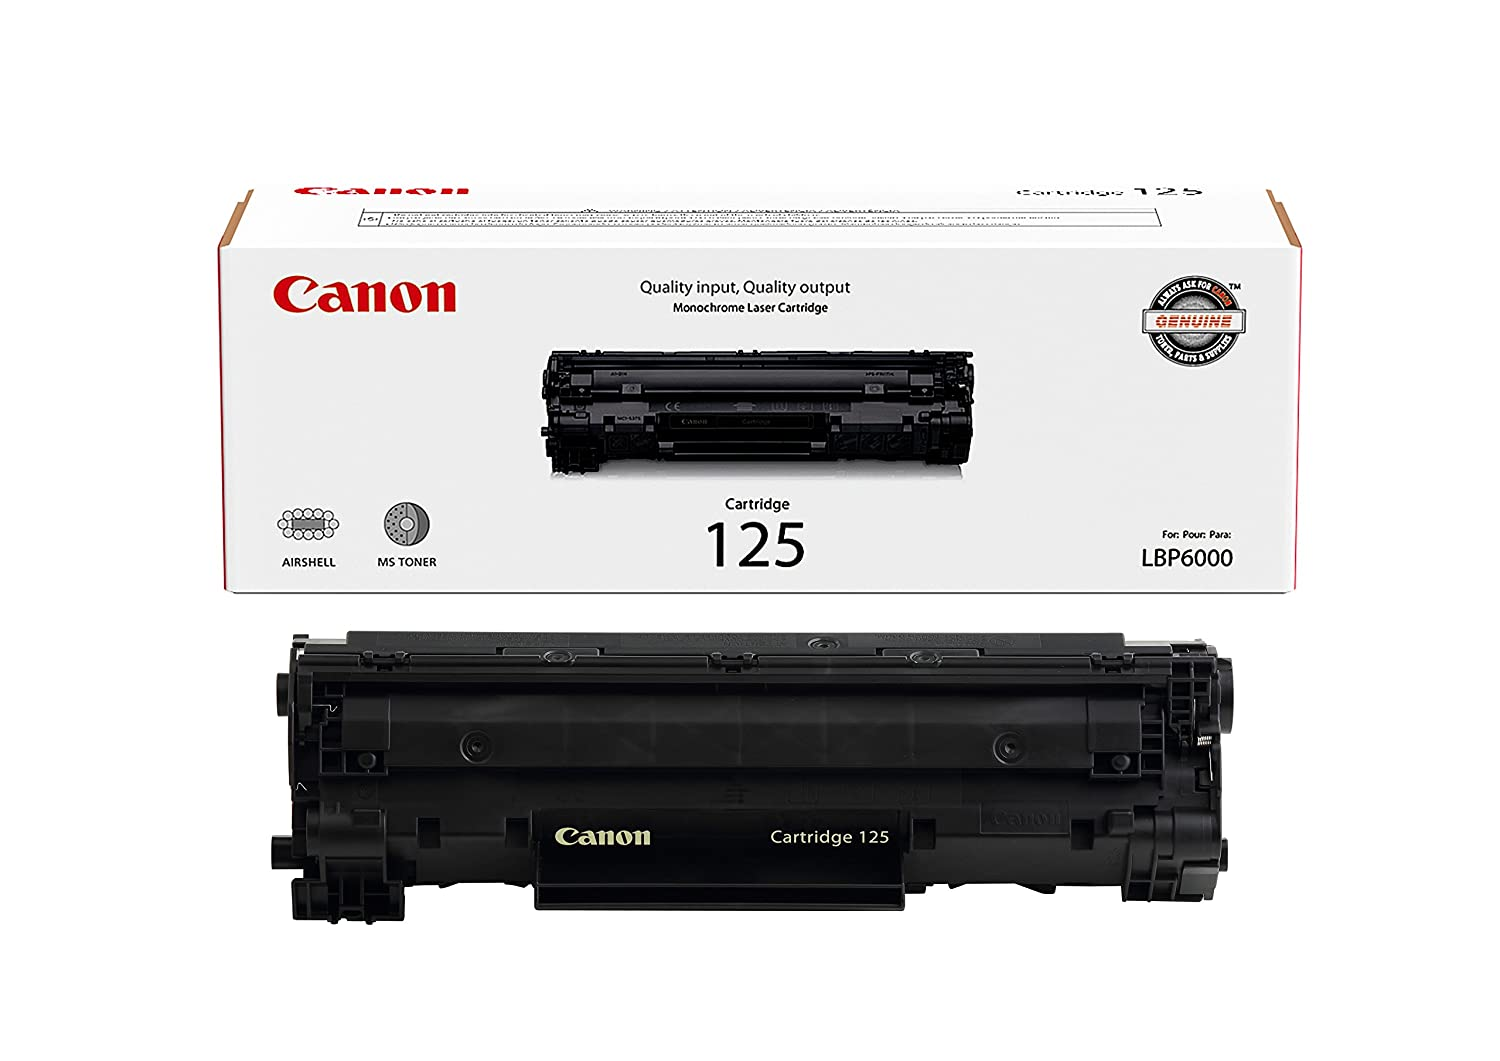 CANON M3010 WINDOWS VISTA DRIVER DOWNLOAD